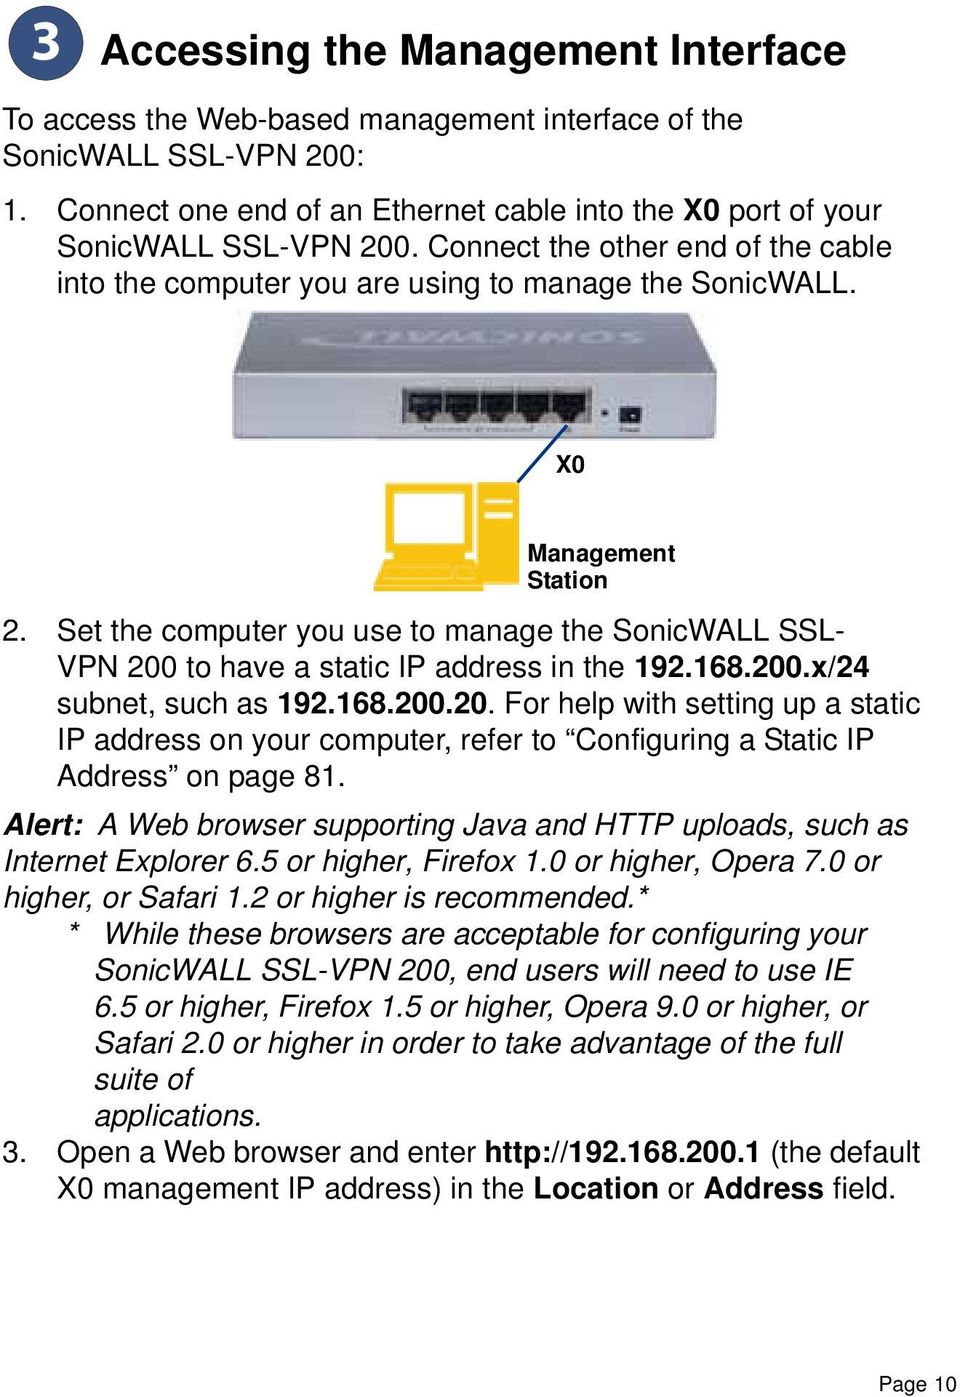 Set the computer you use to manage the SonicWALL SSL- VPN 200 to have a static IP address in the 192.168.200.x/24 subnet, such as 192.168.200.20. For help with setting up a static IP address on your computer, refer to Configuring a Static IP Address on page 81.